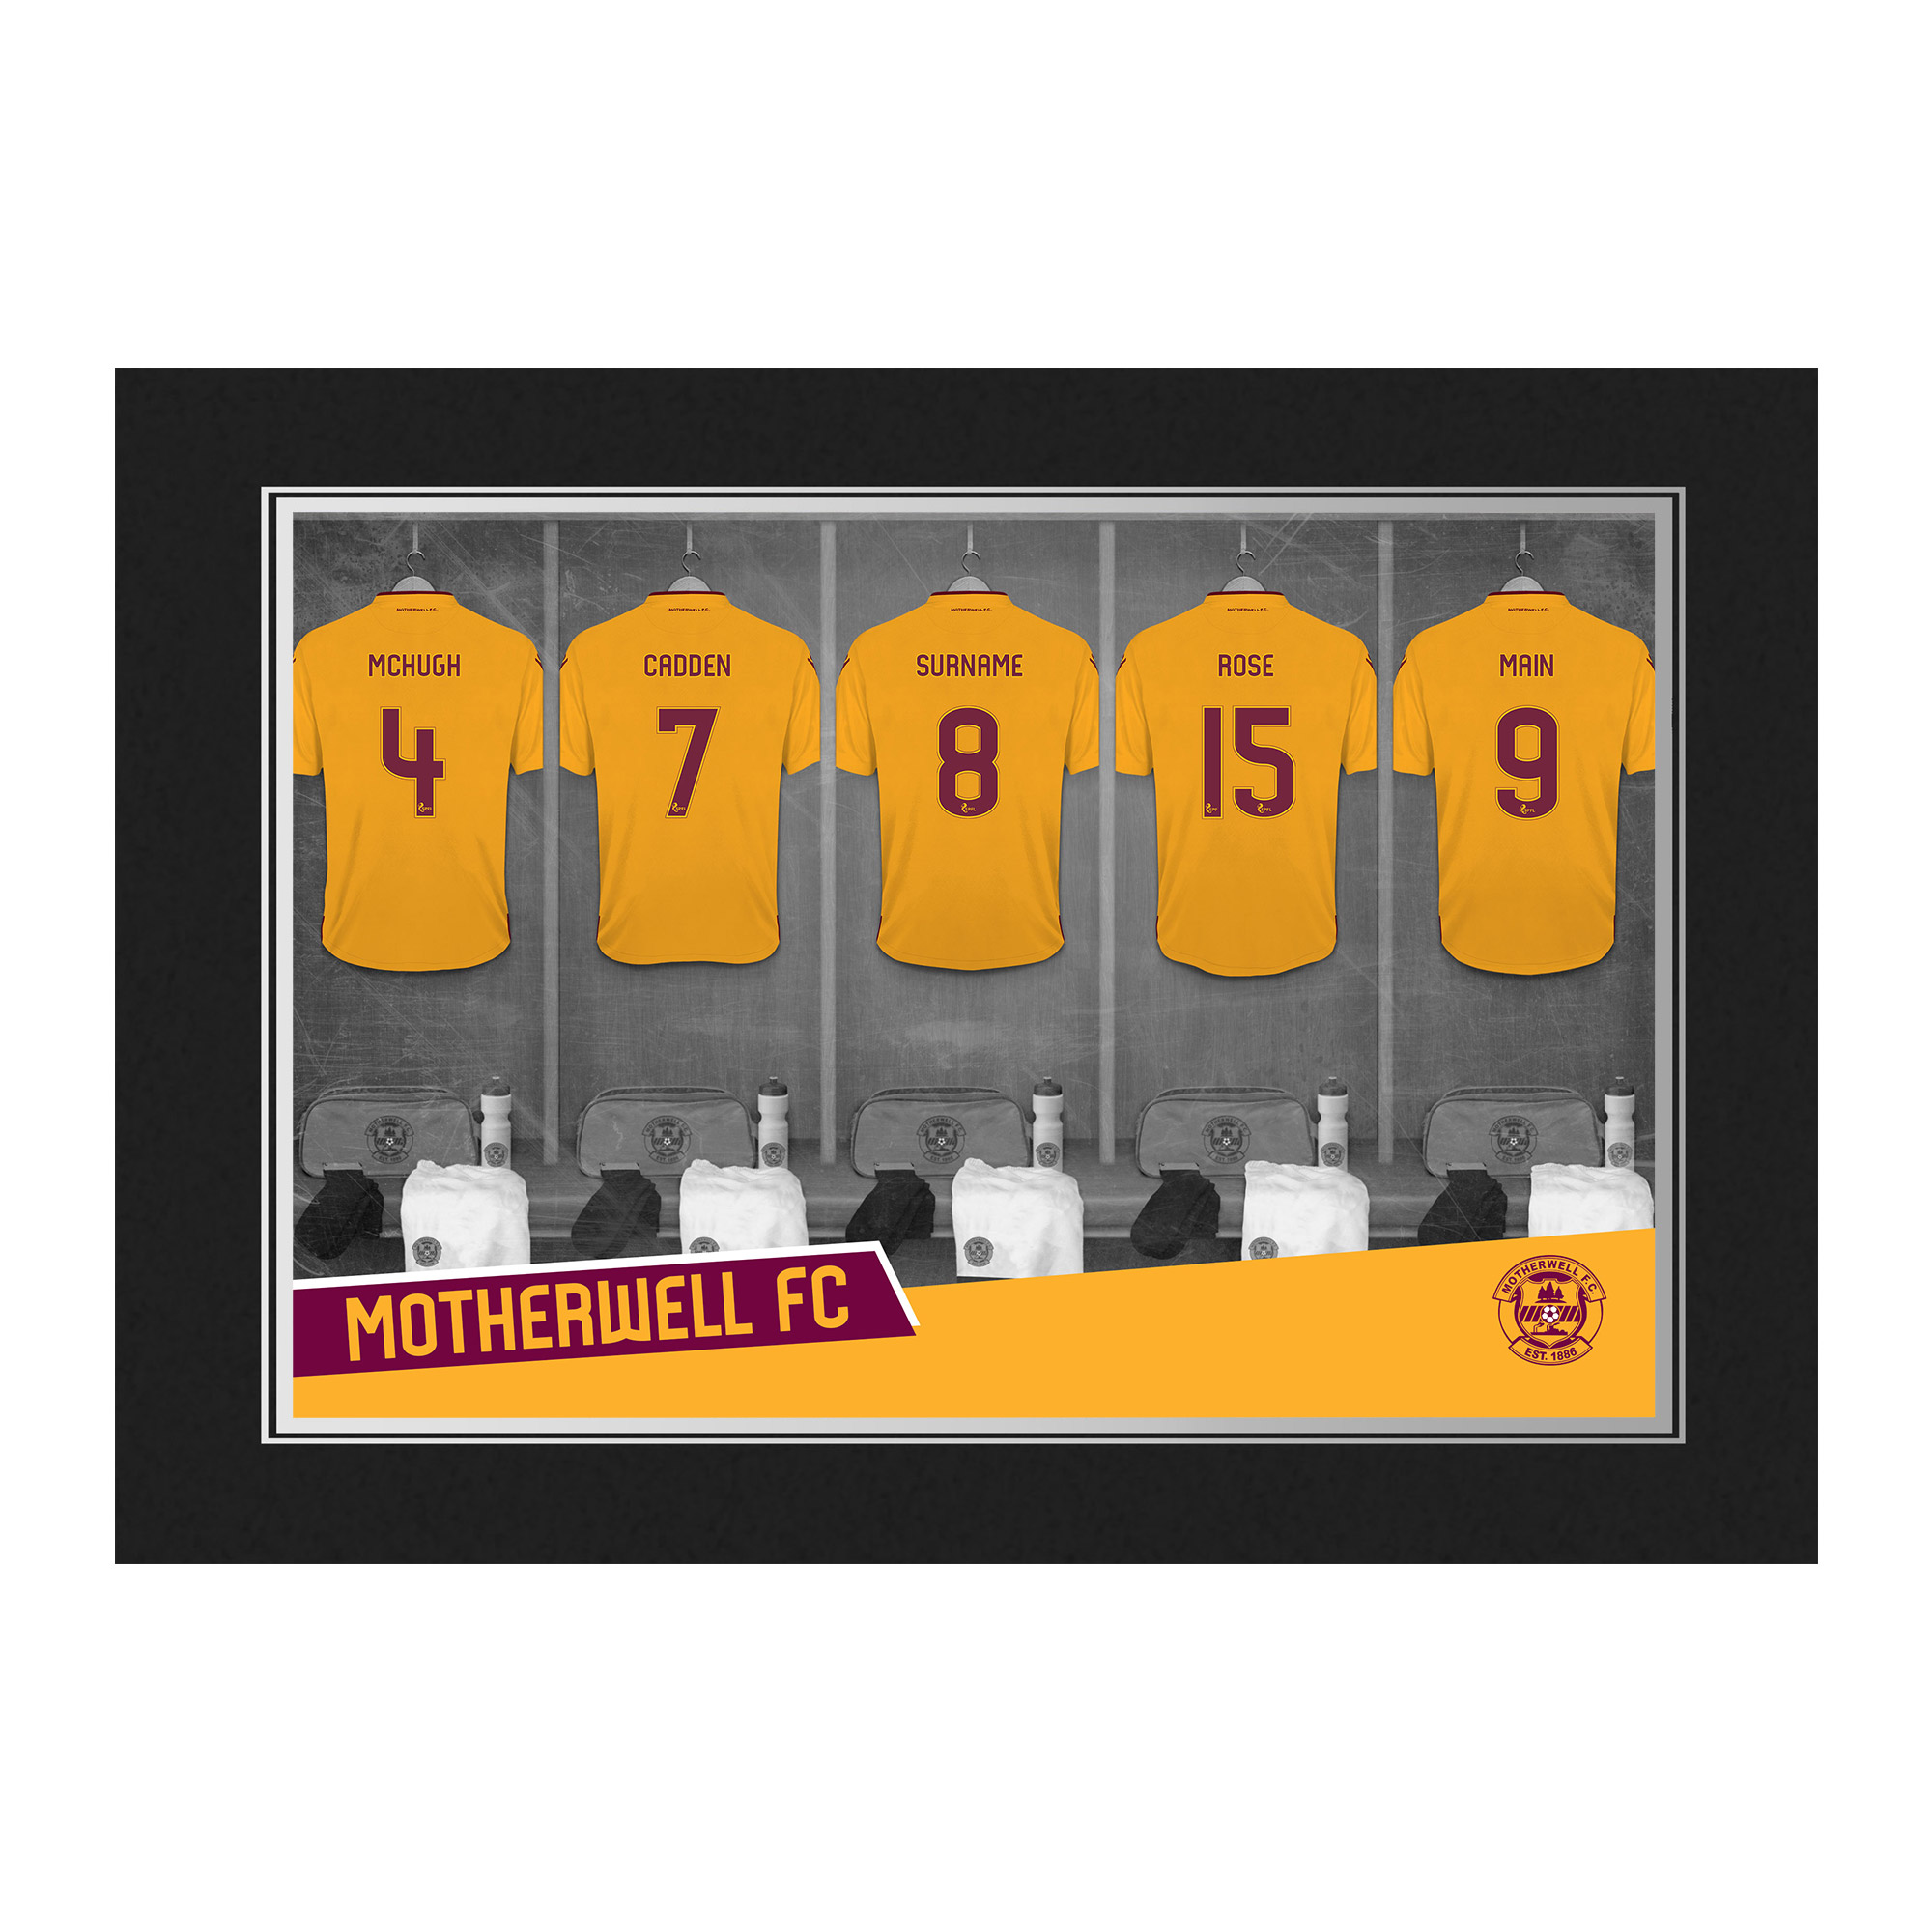 Motherwell FC 9x6 Dressing Room Photo Folder